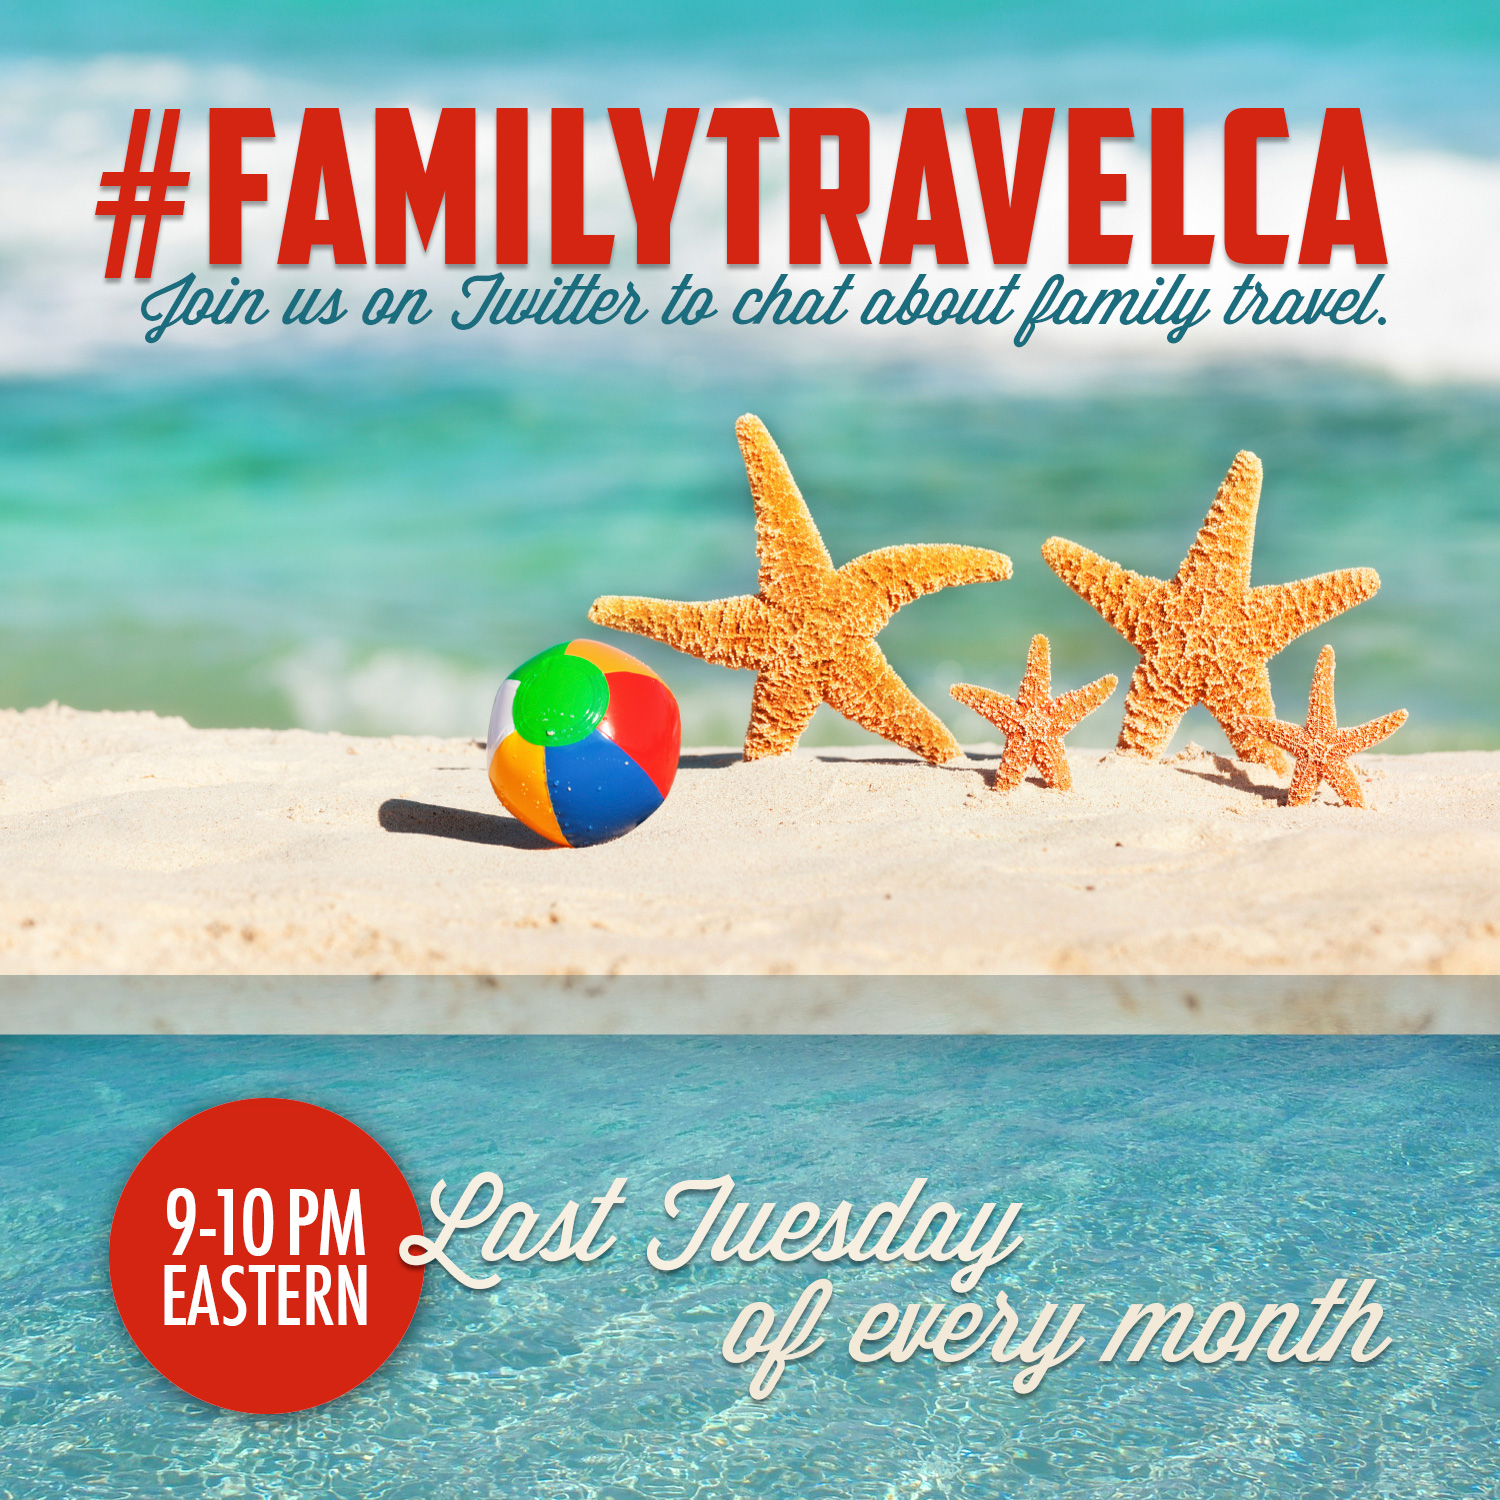 Let's Talk About Vacation Photograpy at the #FamilyTravelCA Chat!